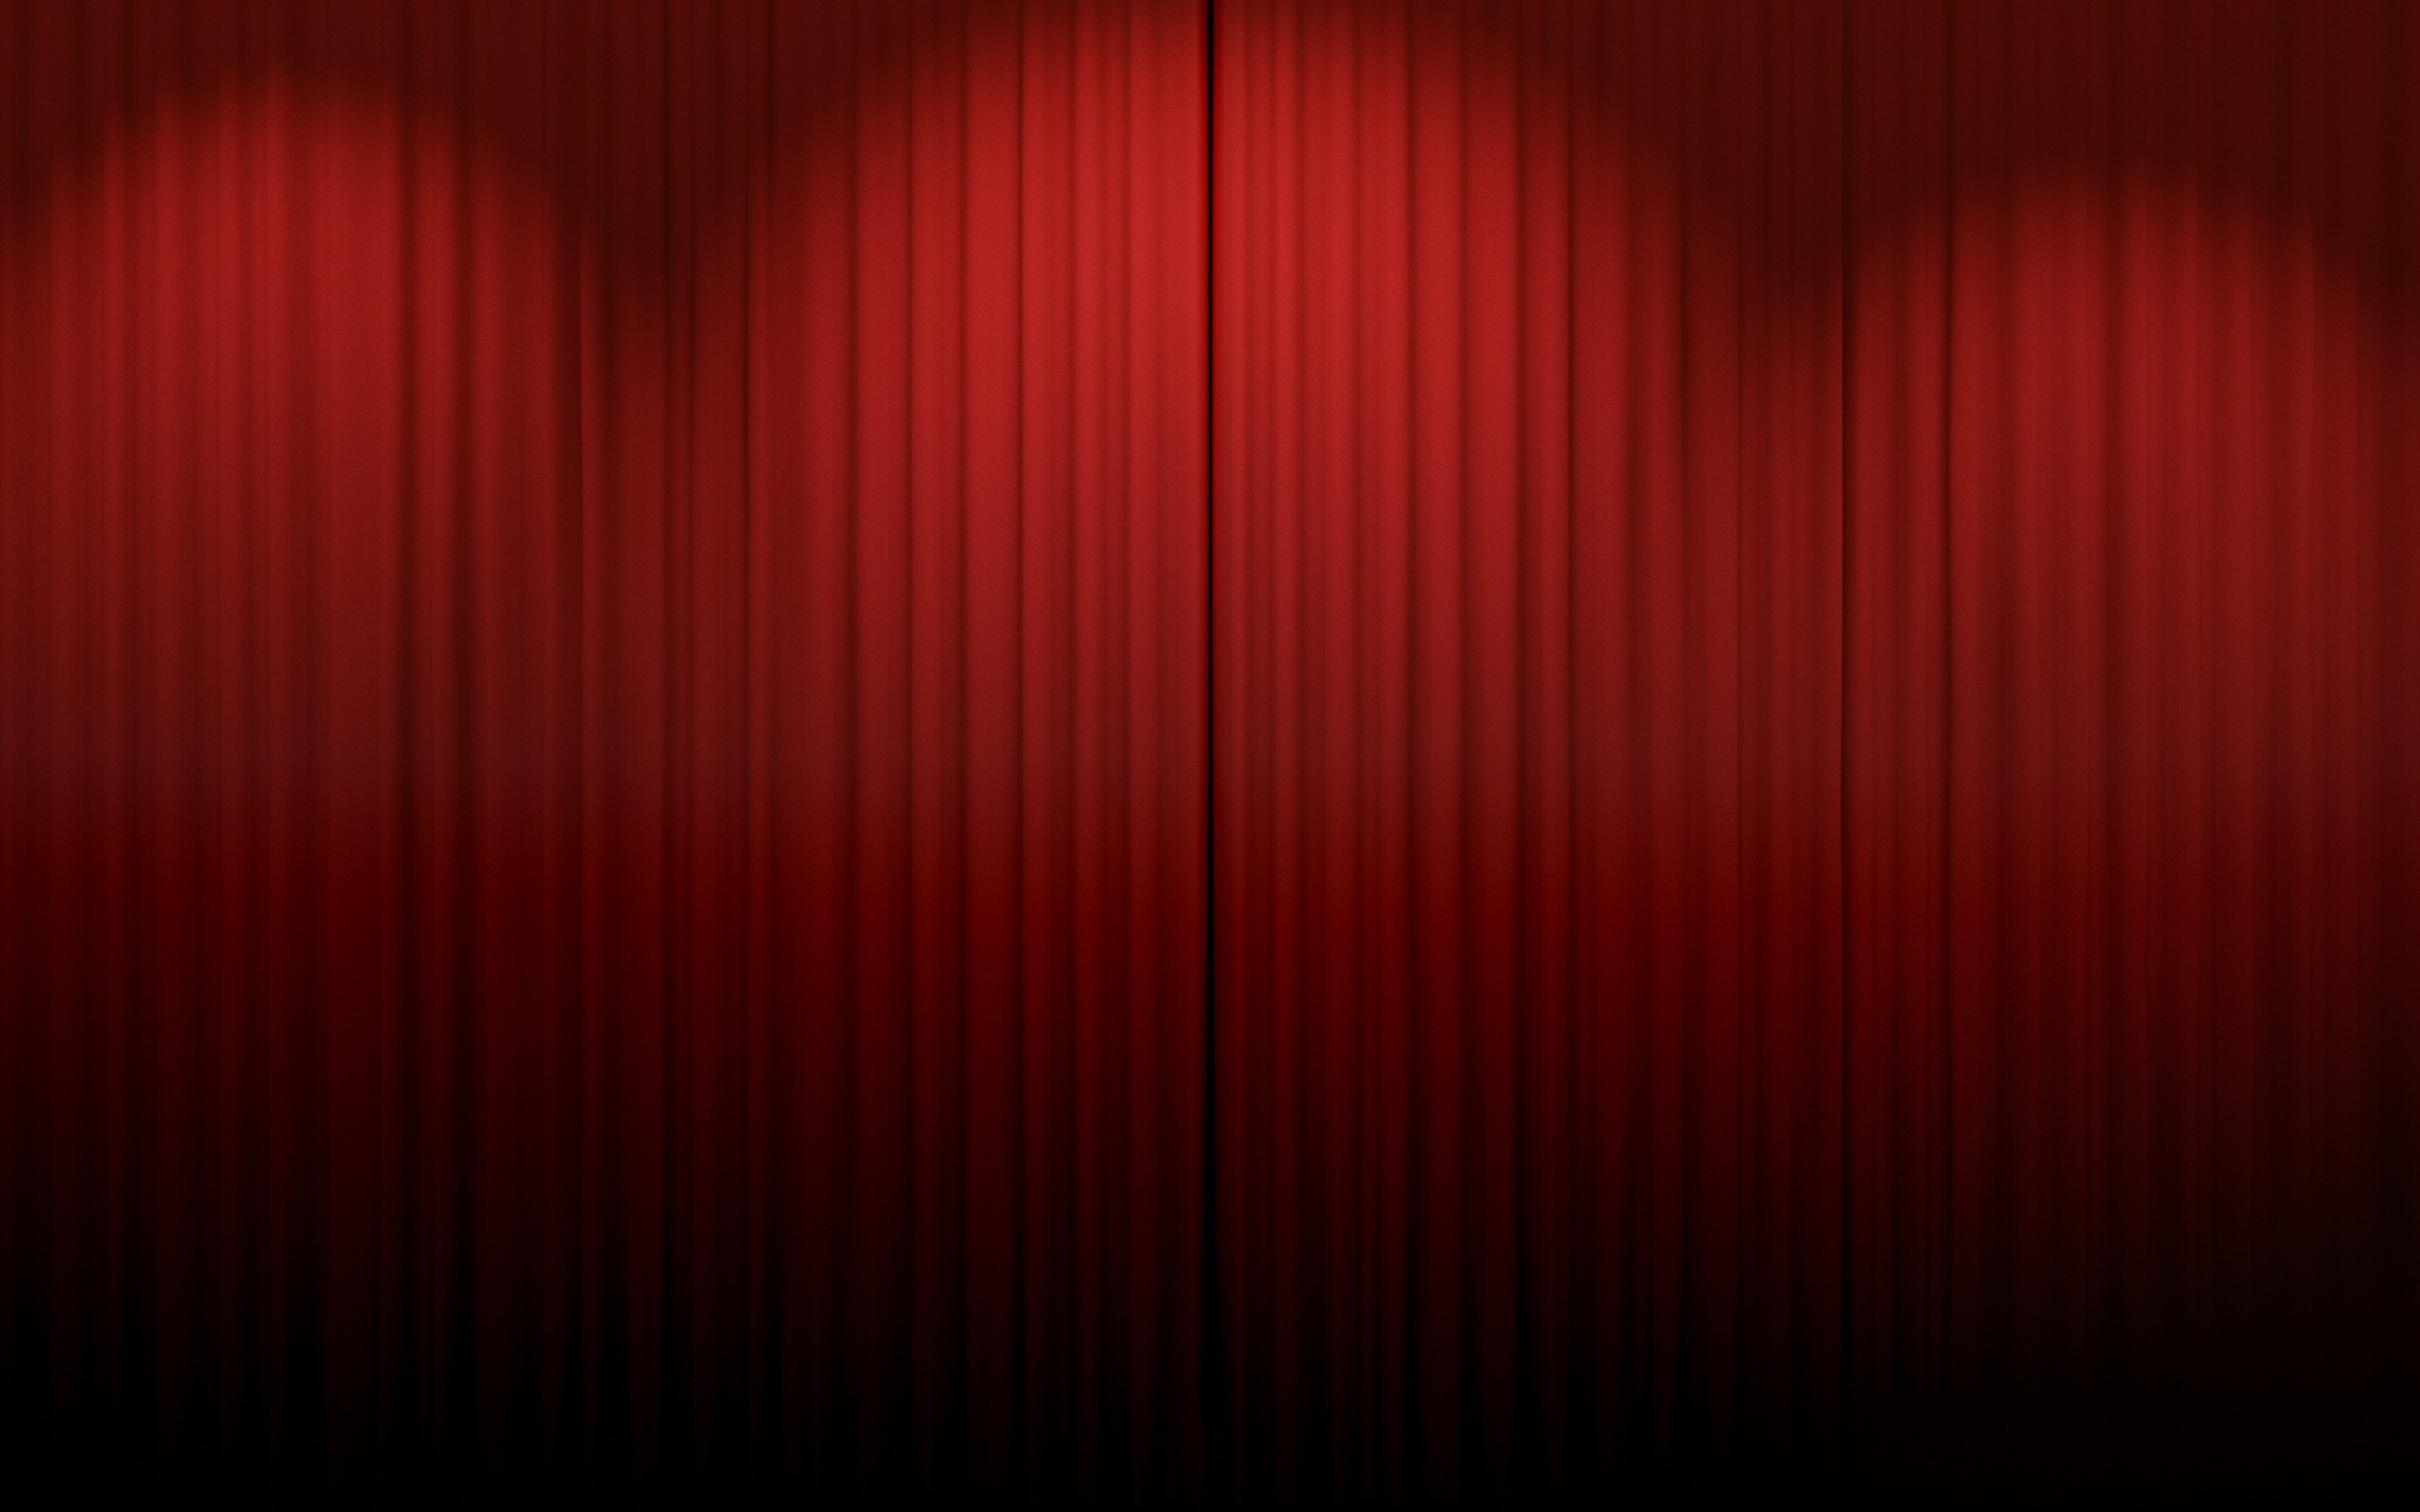 Free Download Red Curtains Wallpaper 2560x1600 Theatre Scenario For Your Desktop Mobile Tablet Explore 46 Cinema Movie Wallpapers Movies Hd